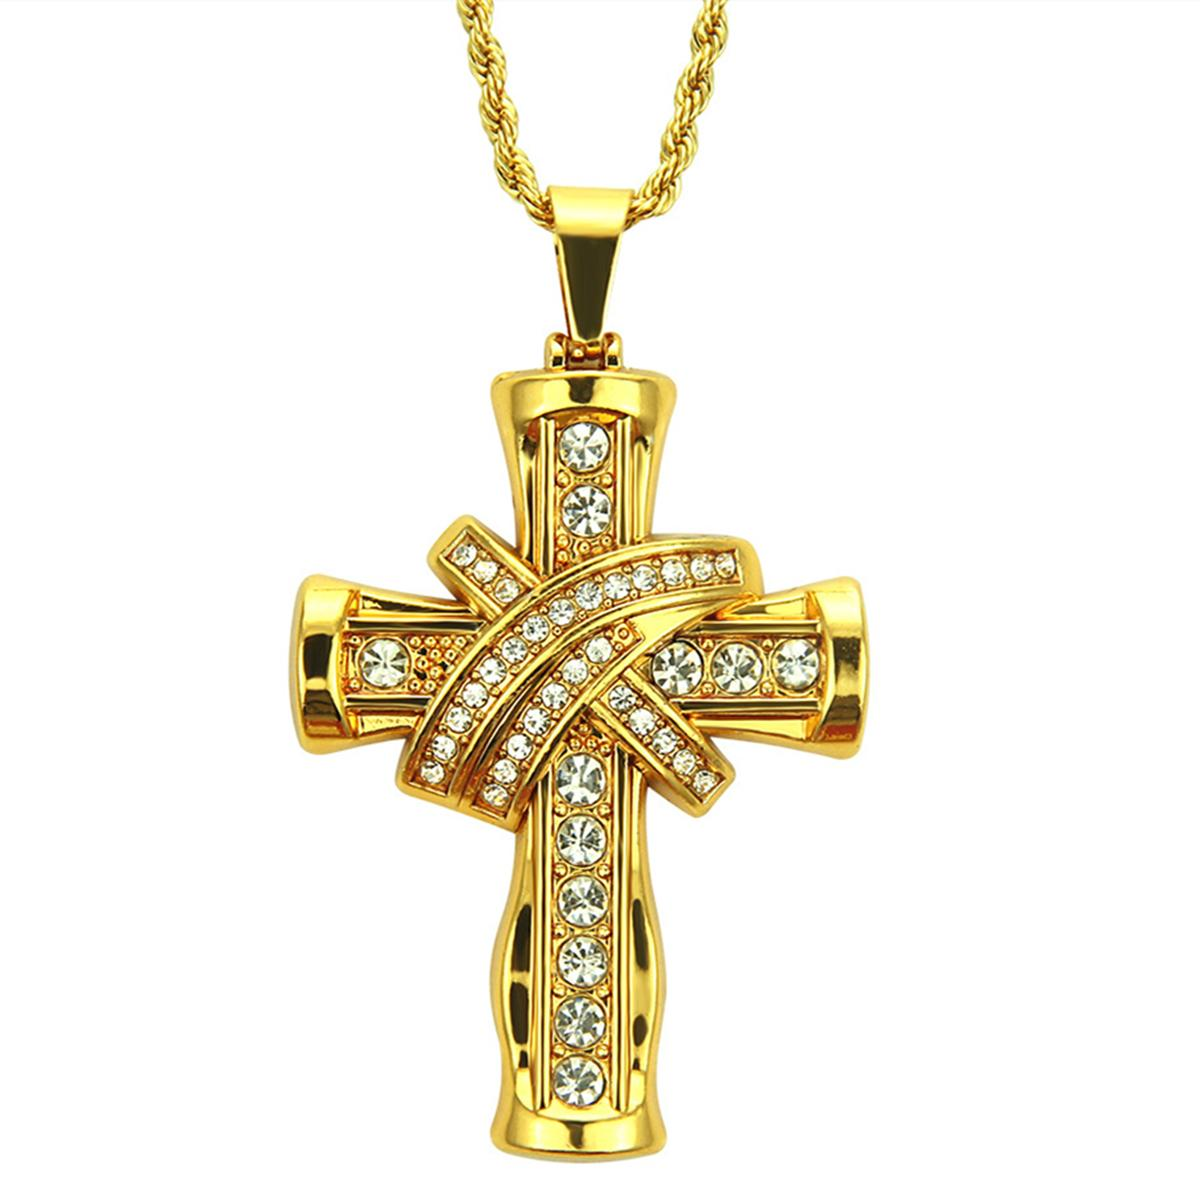 18k Gold Iced Out Crystal Cross Pendant Necklace with 30inch Rope Chain Necklace Hip Hop Jewelry Mens Necklace Gifts for Man